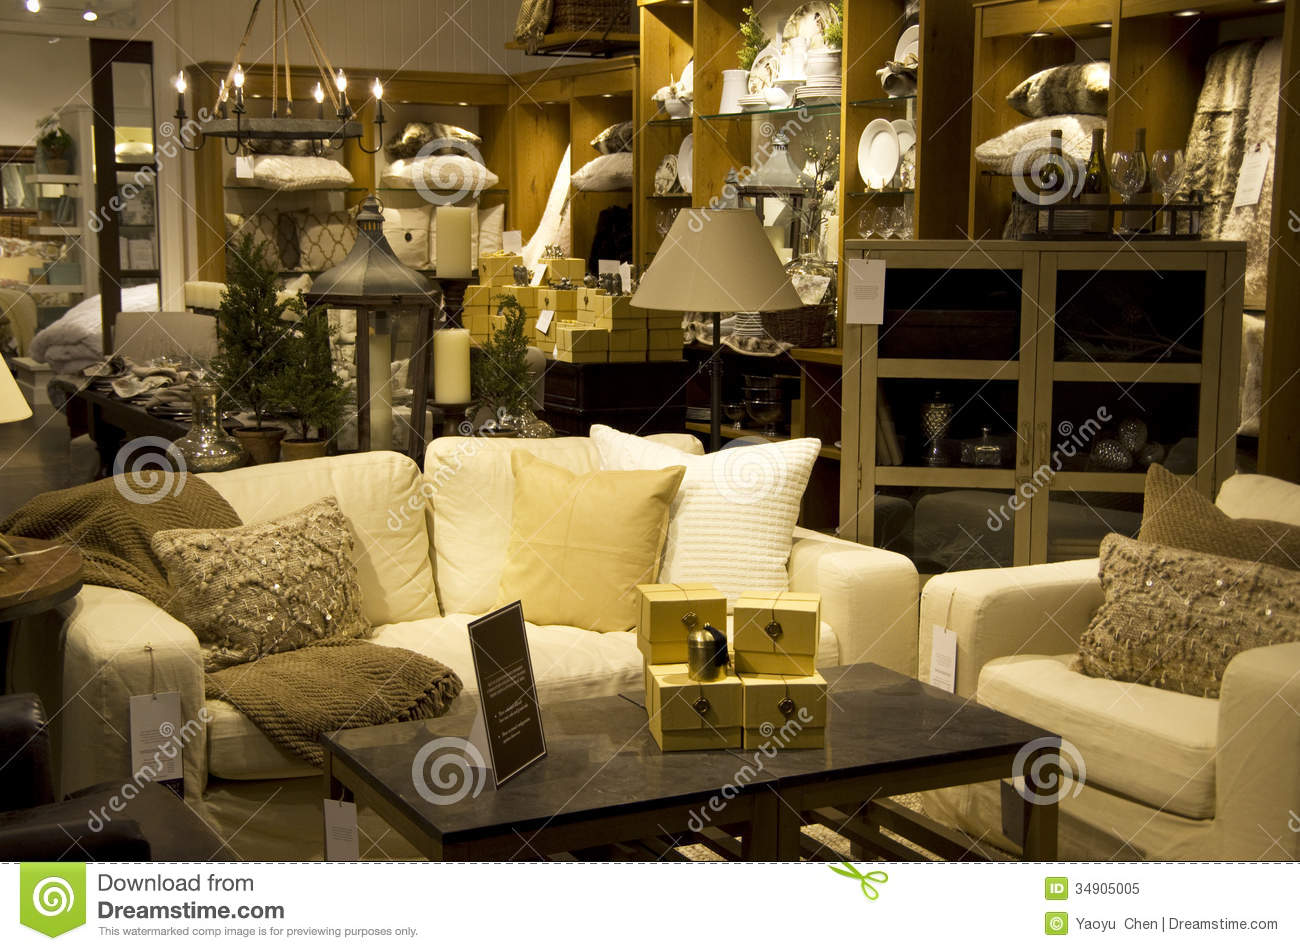 luxury furniture home decor store - Home Decor Photos Free